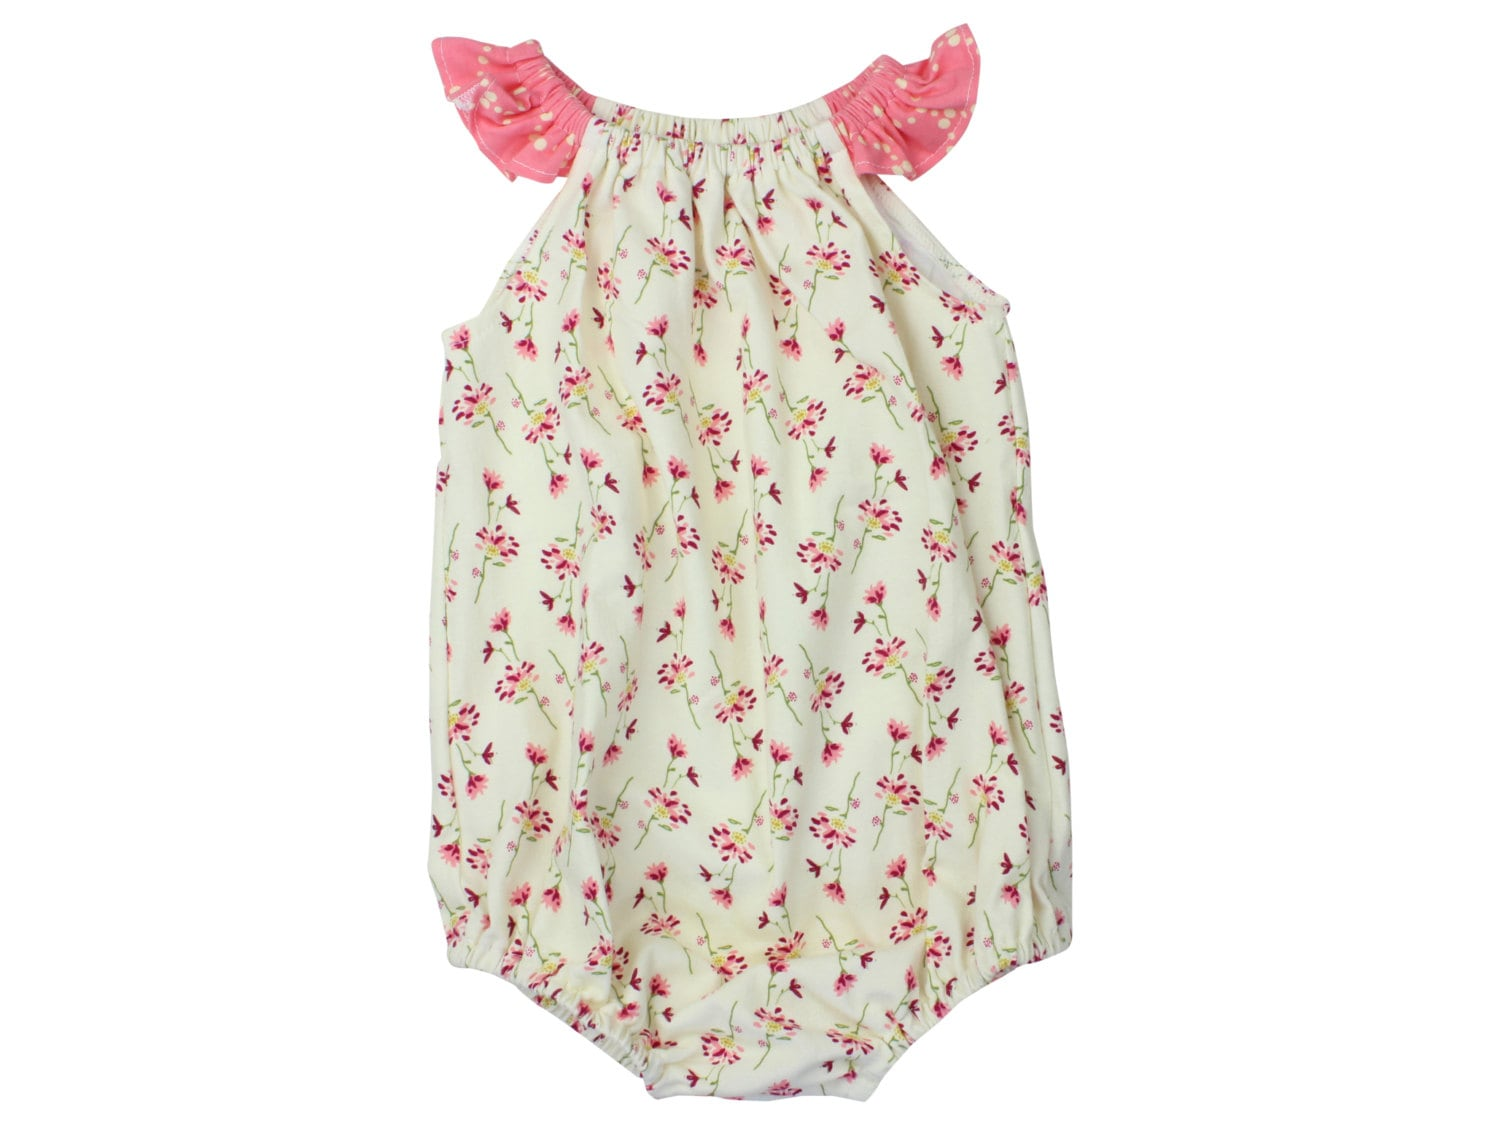 92ccb228f47b Baby Romper Toddler Romper Pink Flower Floral Romper Dainty ...